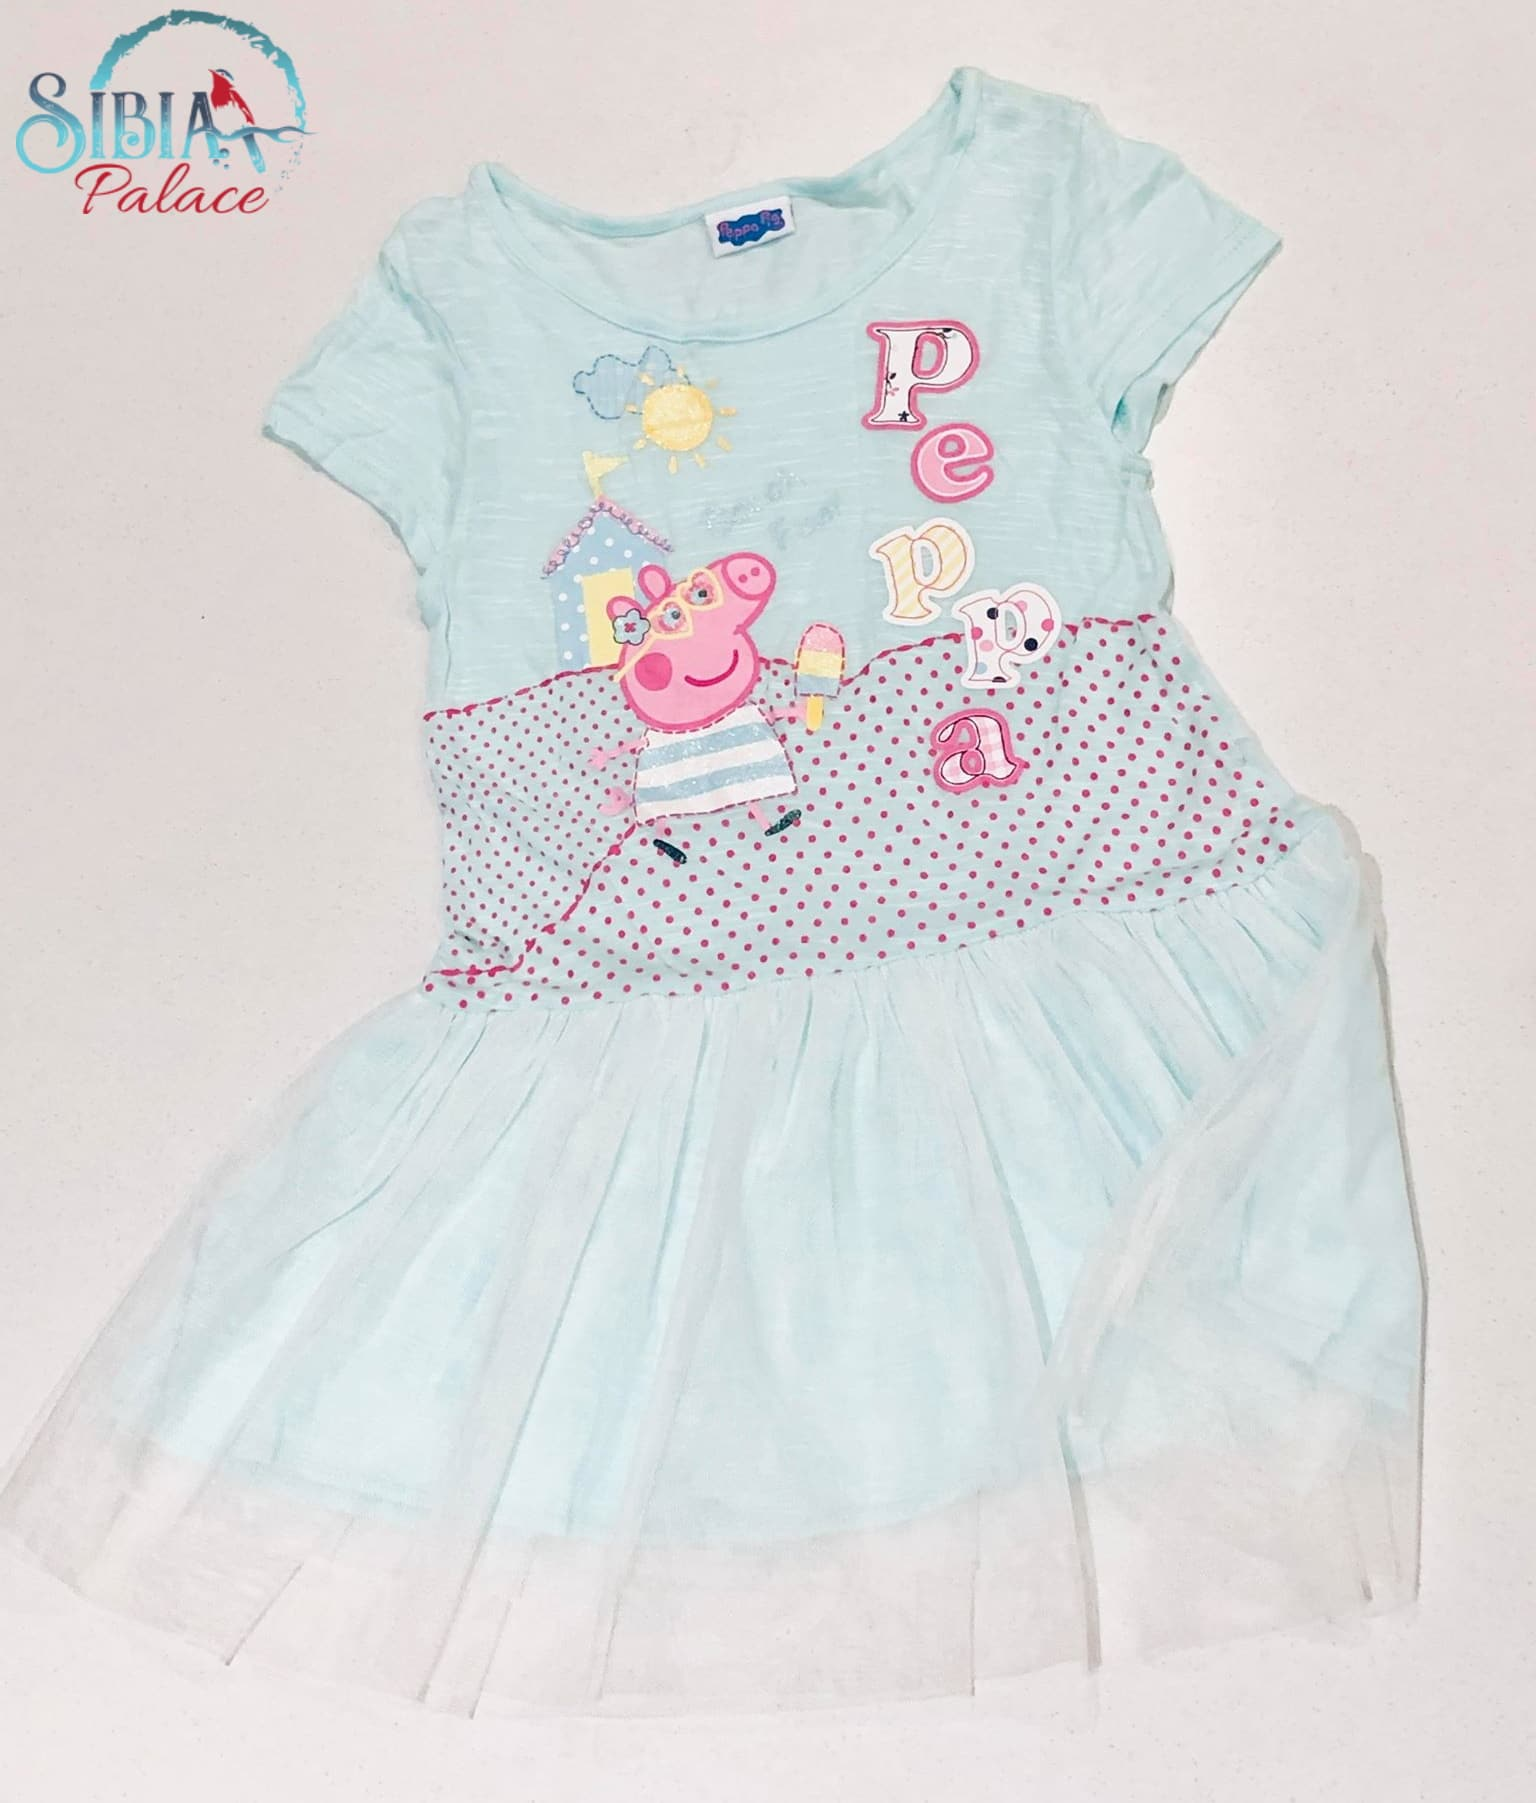 Peppa Pig Girl/'s Peppa and George Pants Set Ages 2-3 Years New Outfit